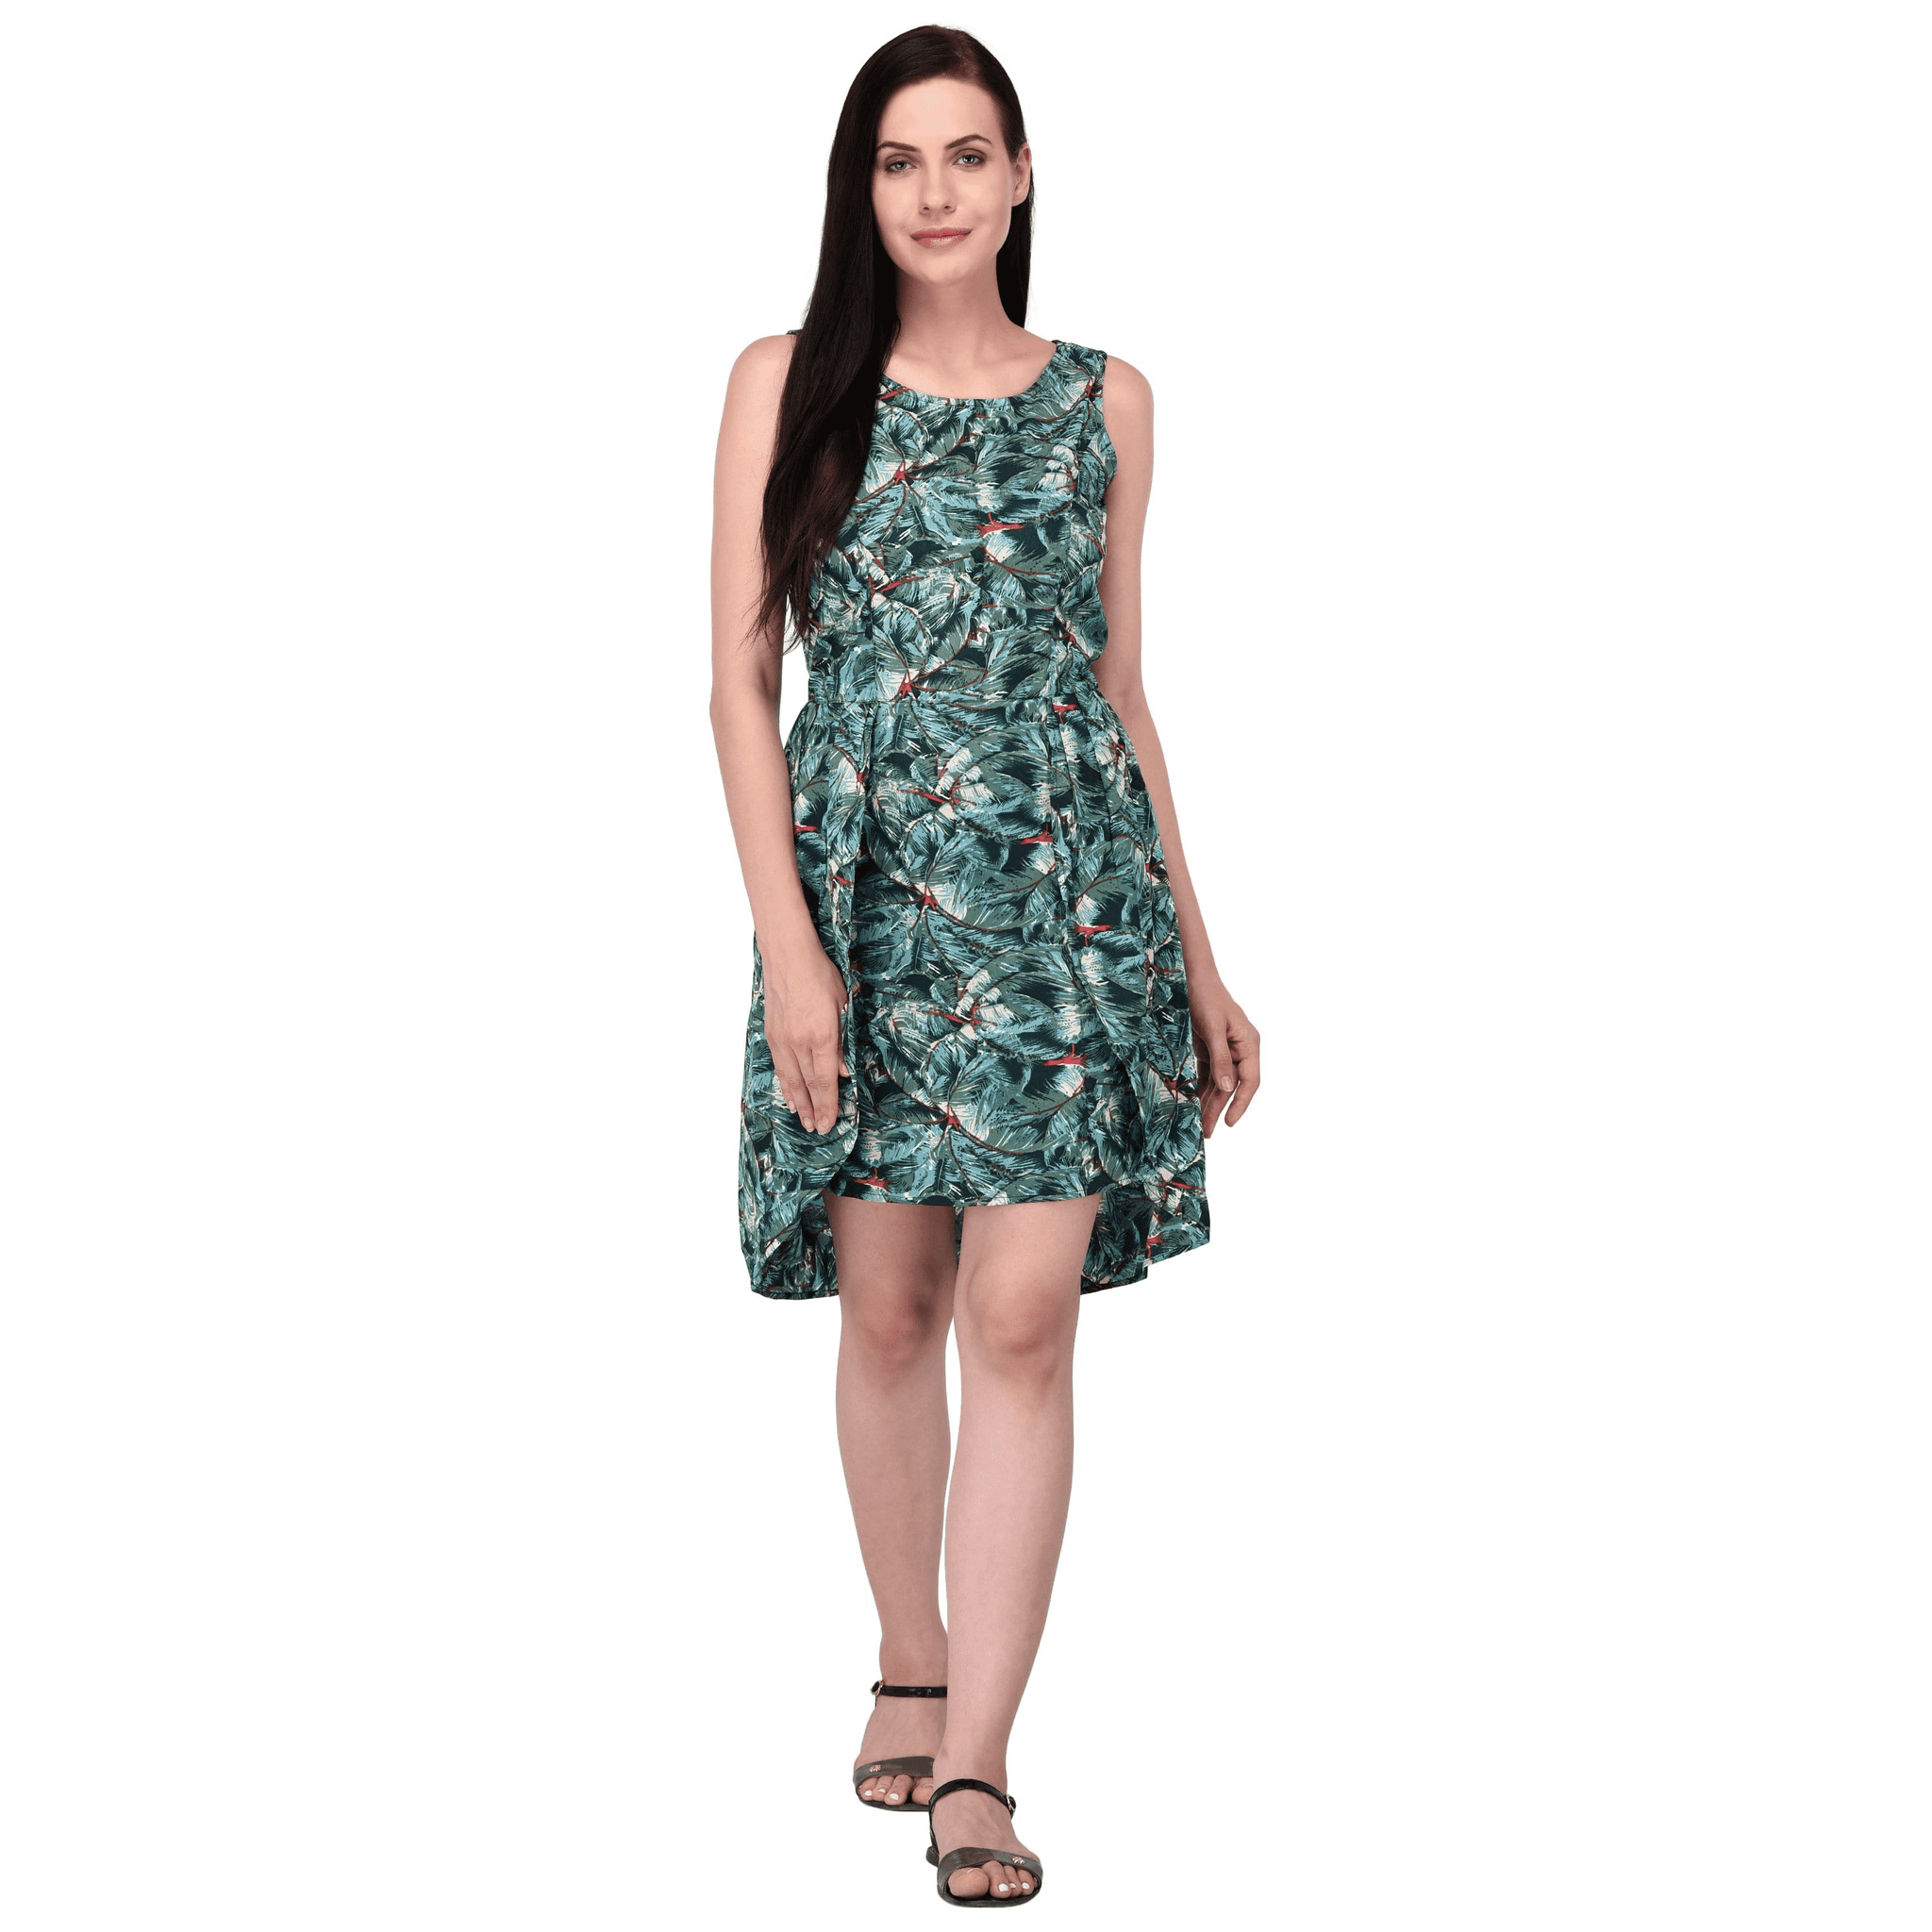 Tropical Print Dress Green - NIXX Clothing